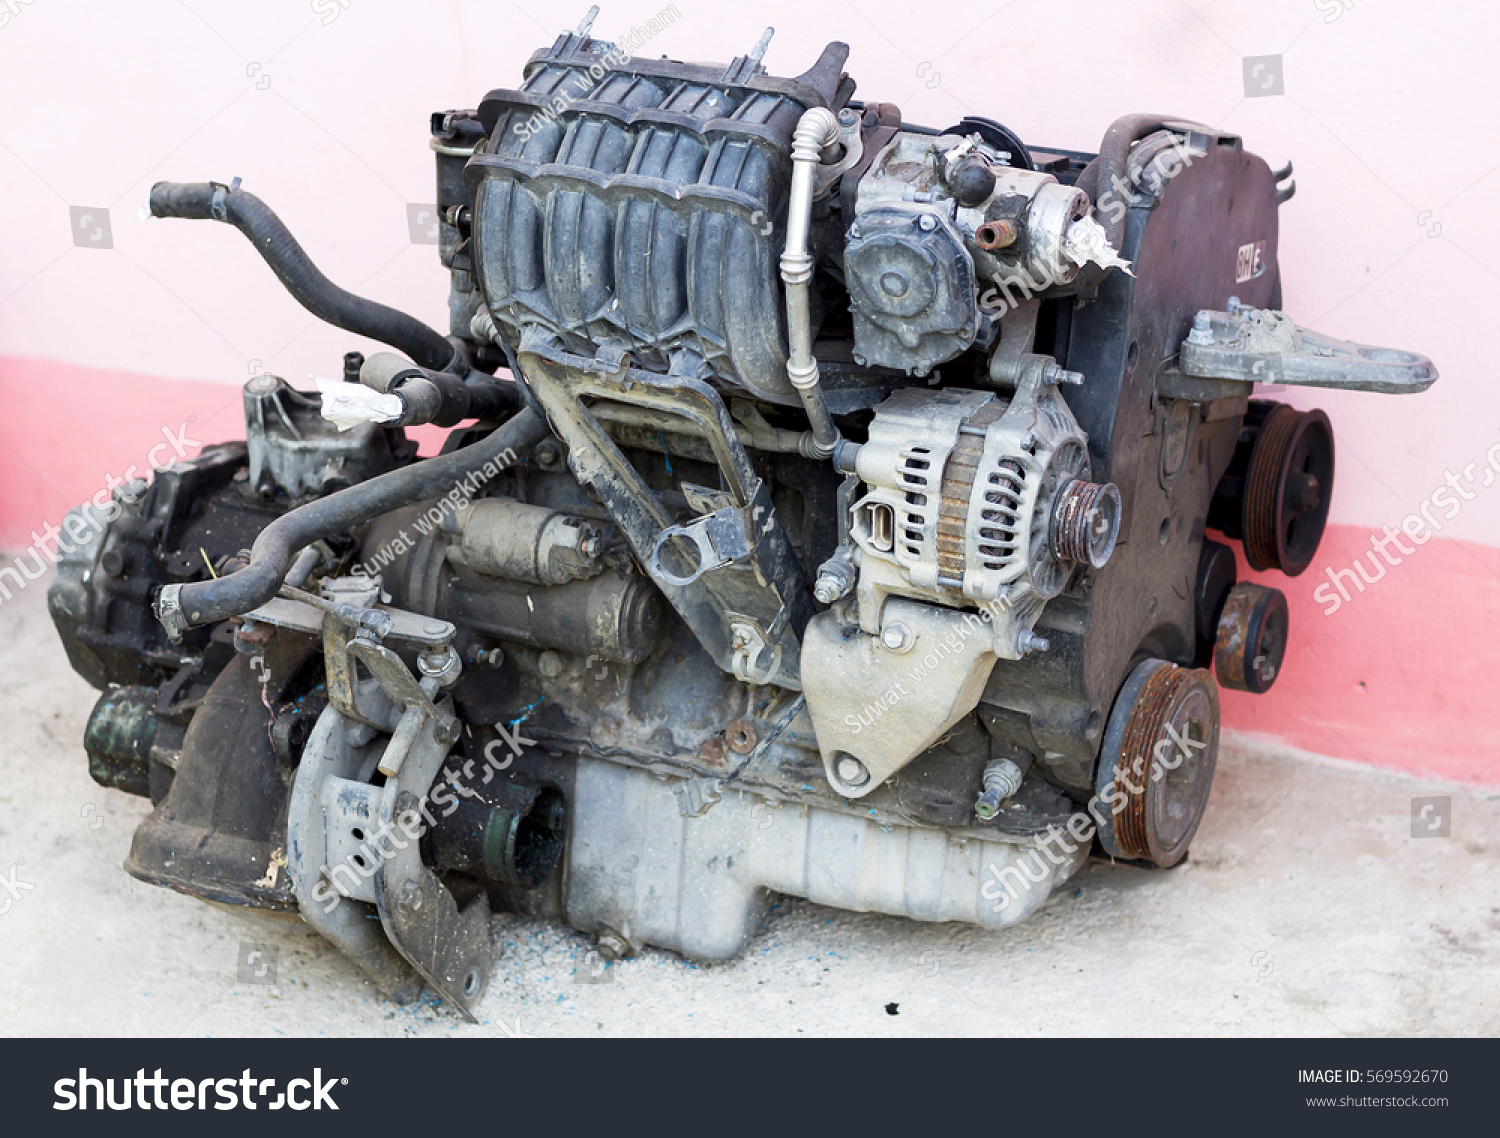 Old Car Engine Stock Photo 569592670 - Shutterstock